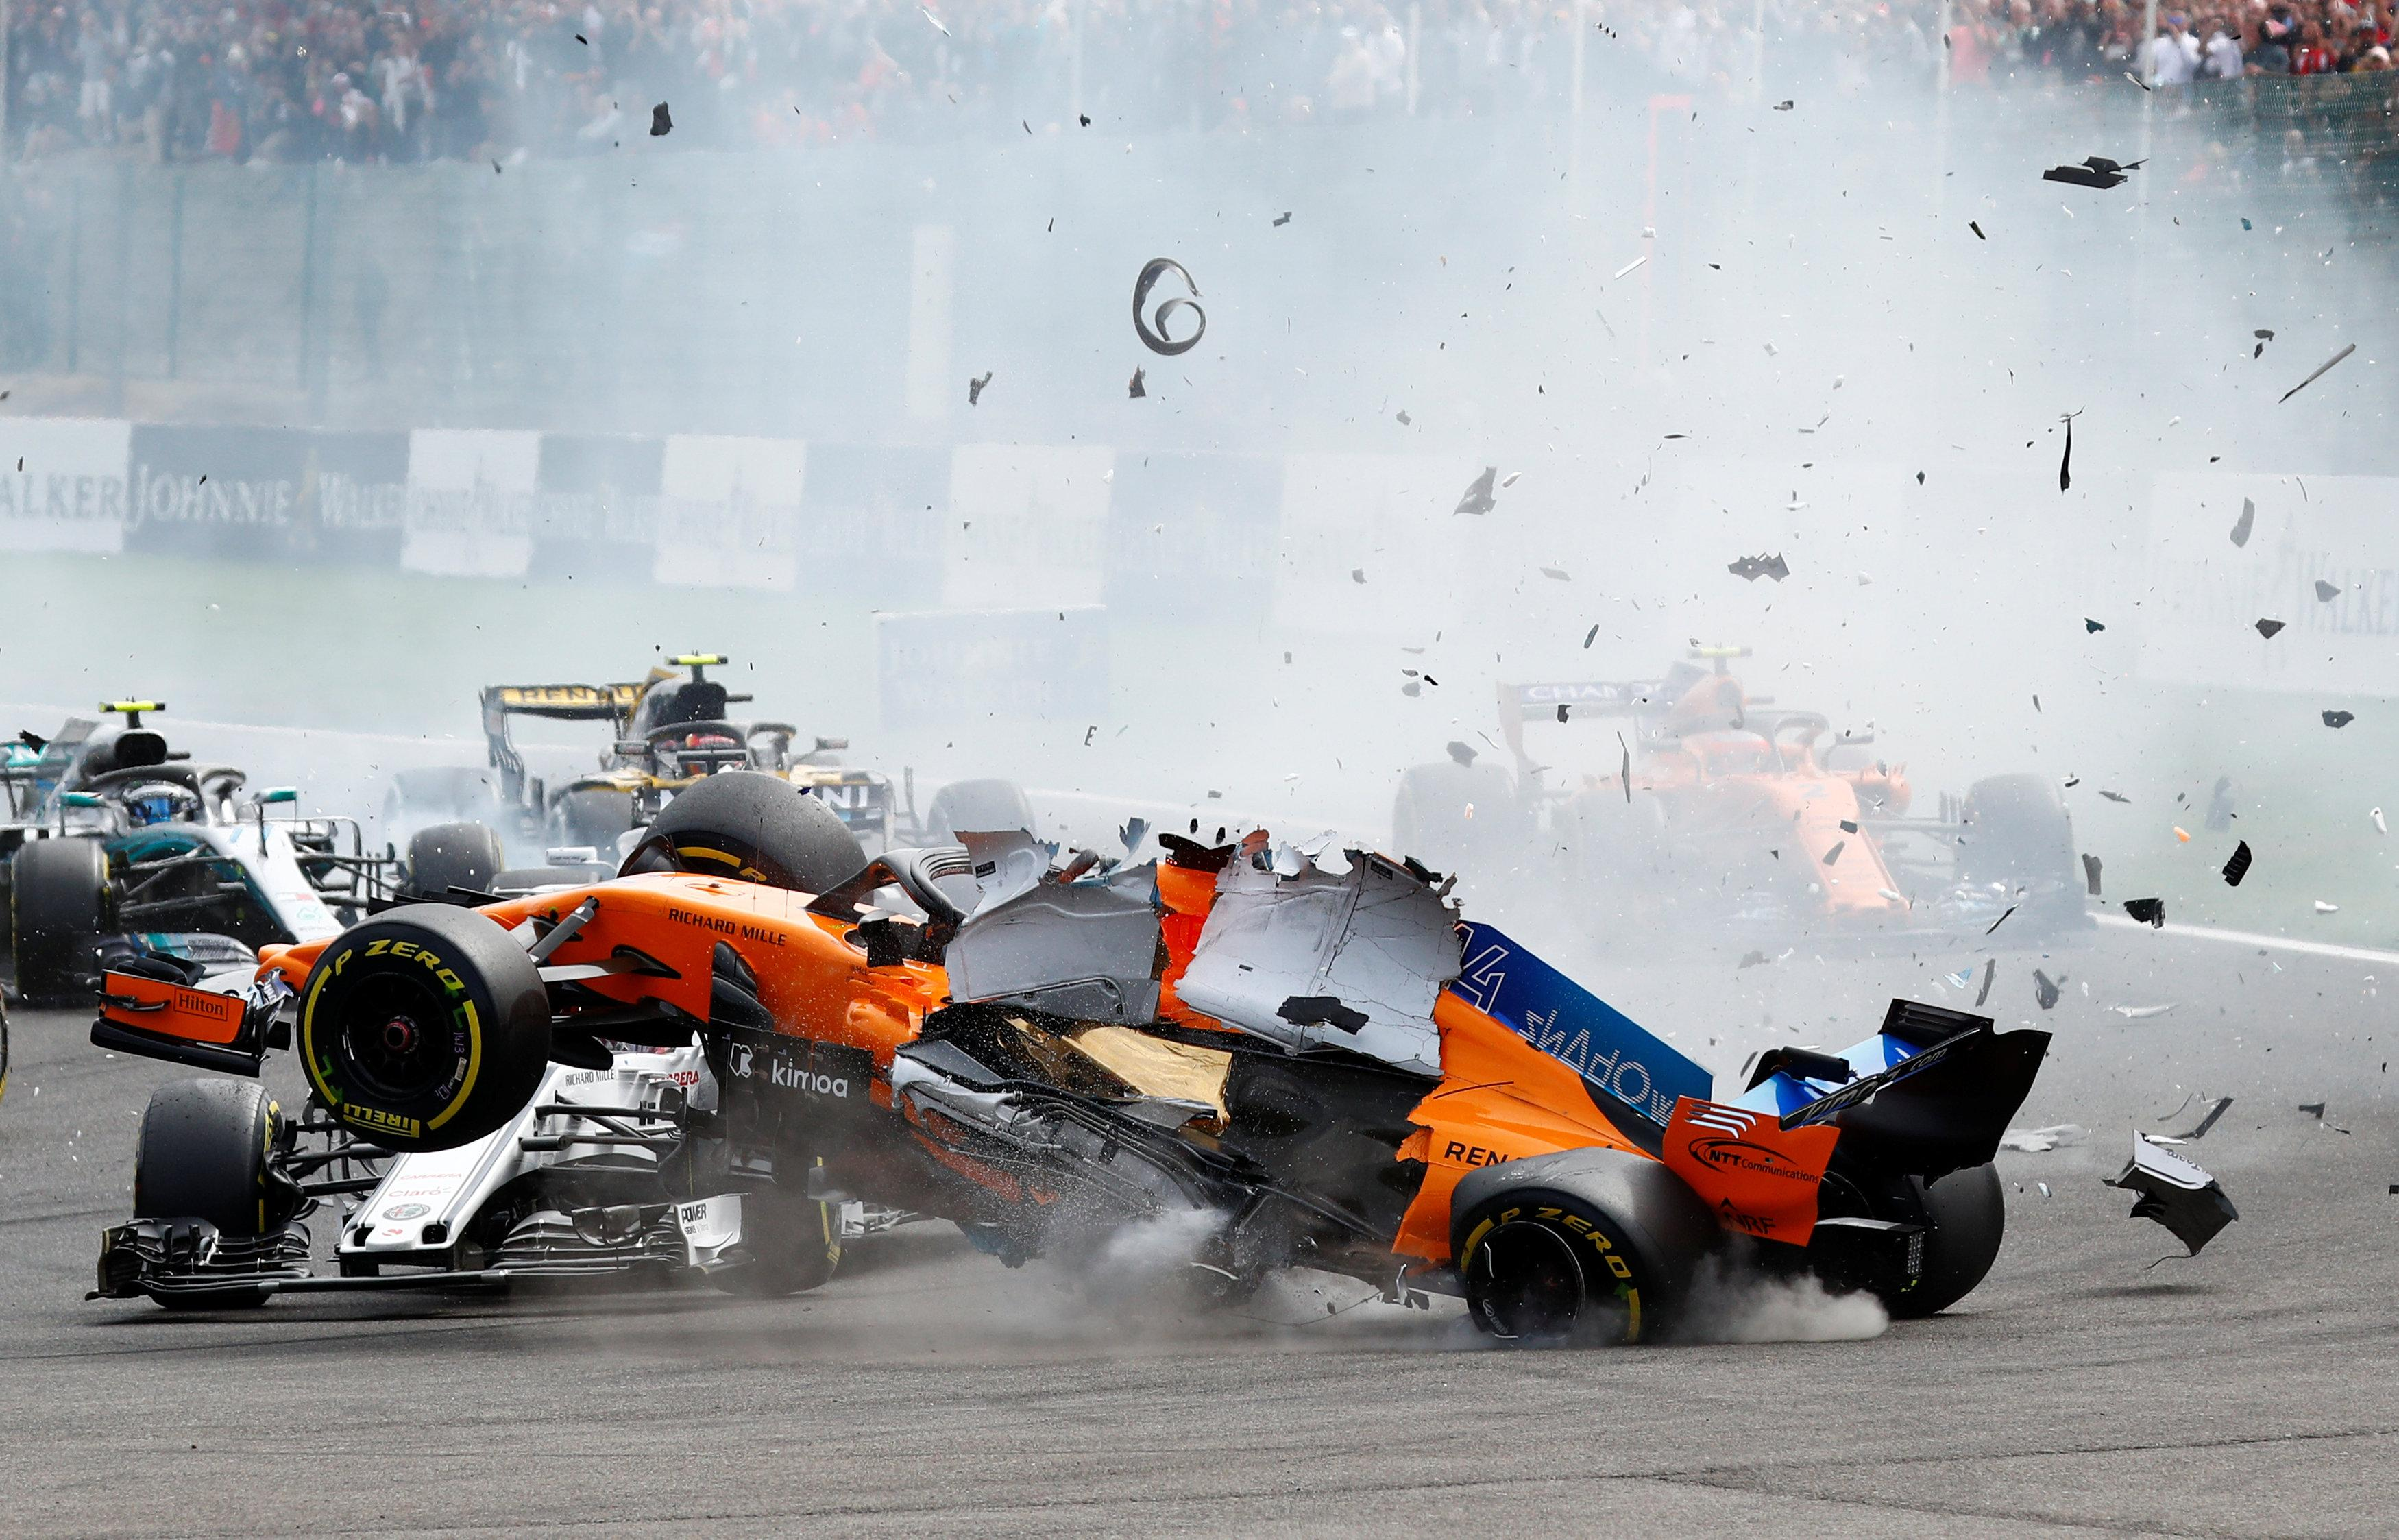 The start of the Belgian GP was thrown into chaos at the very first corner